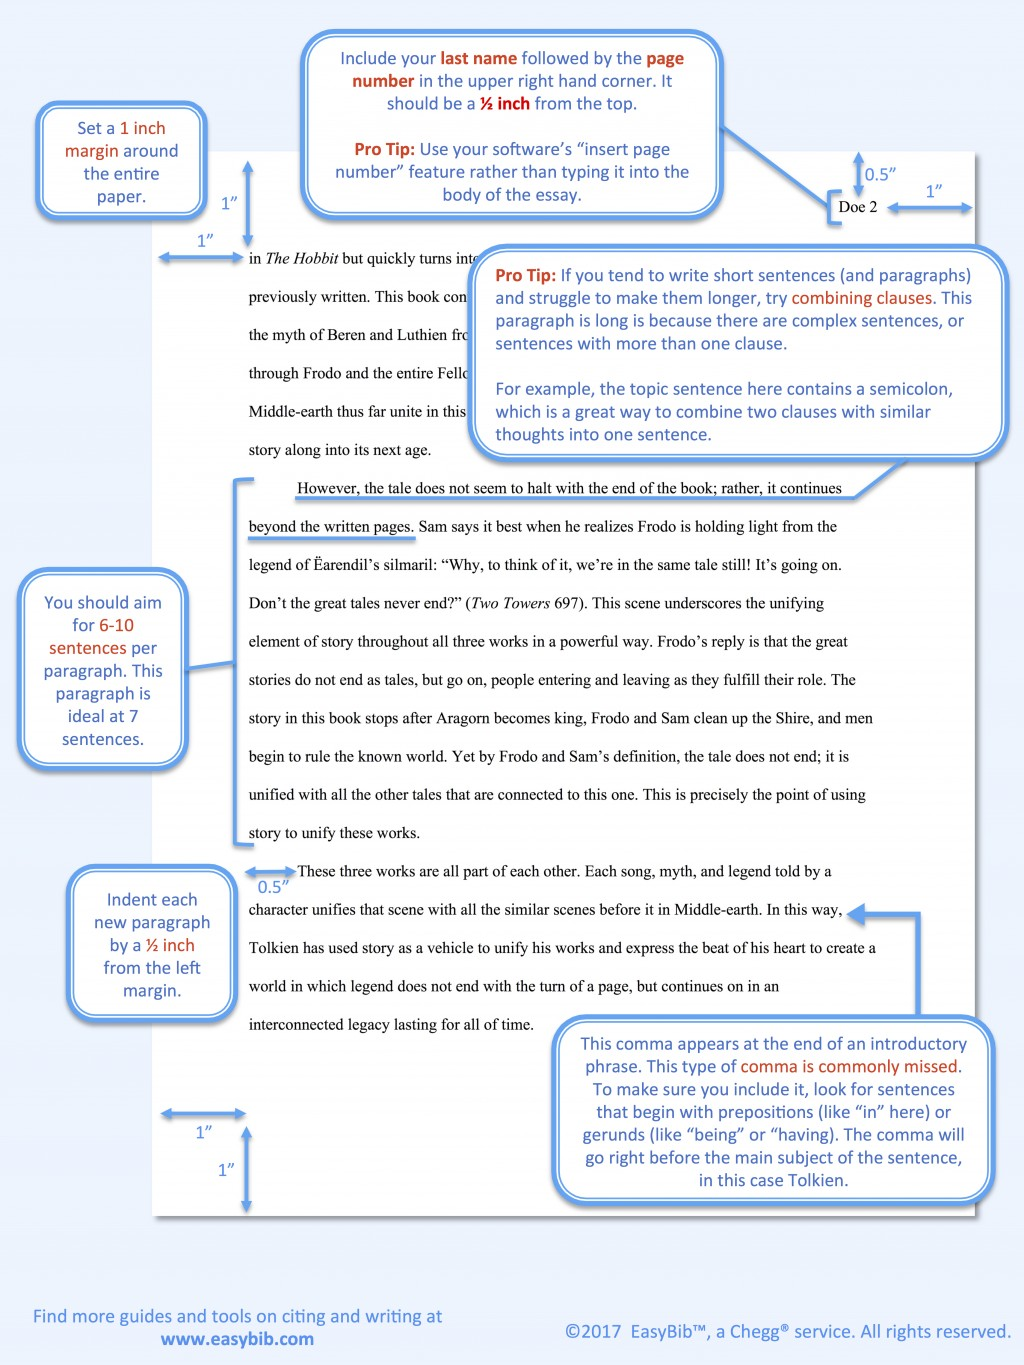 016 First Page Research Paper Mla Format Model Unique Style For The Of A Title Large